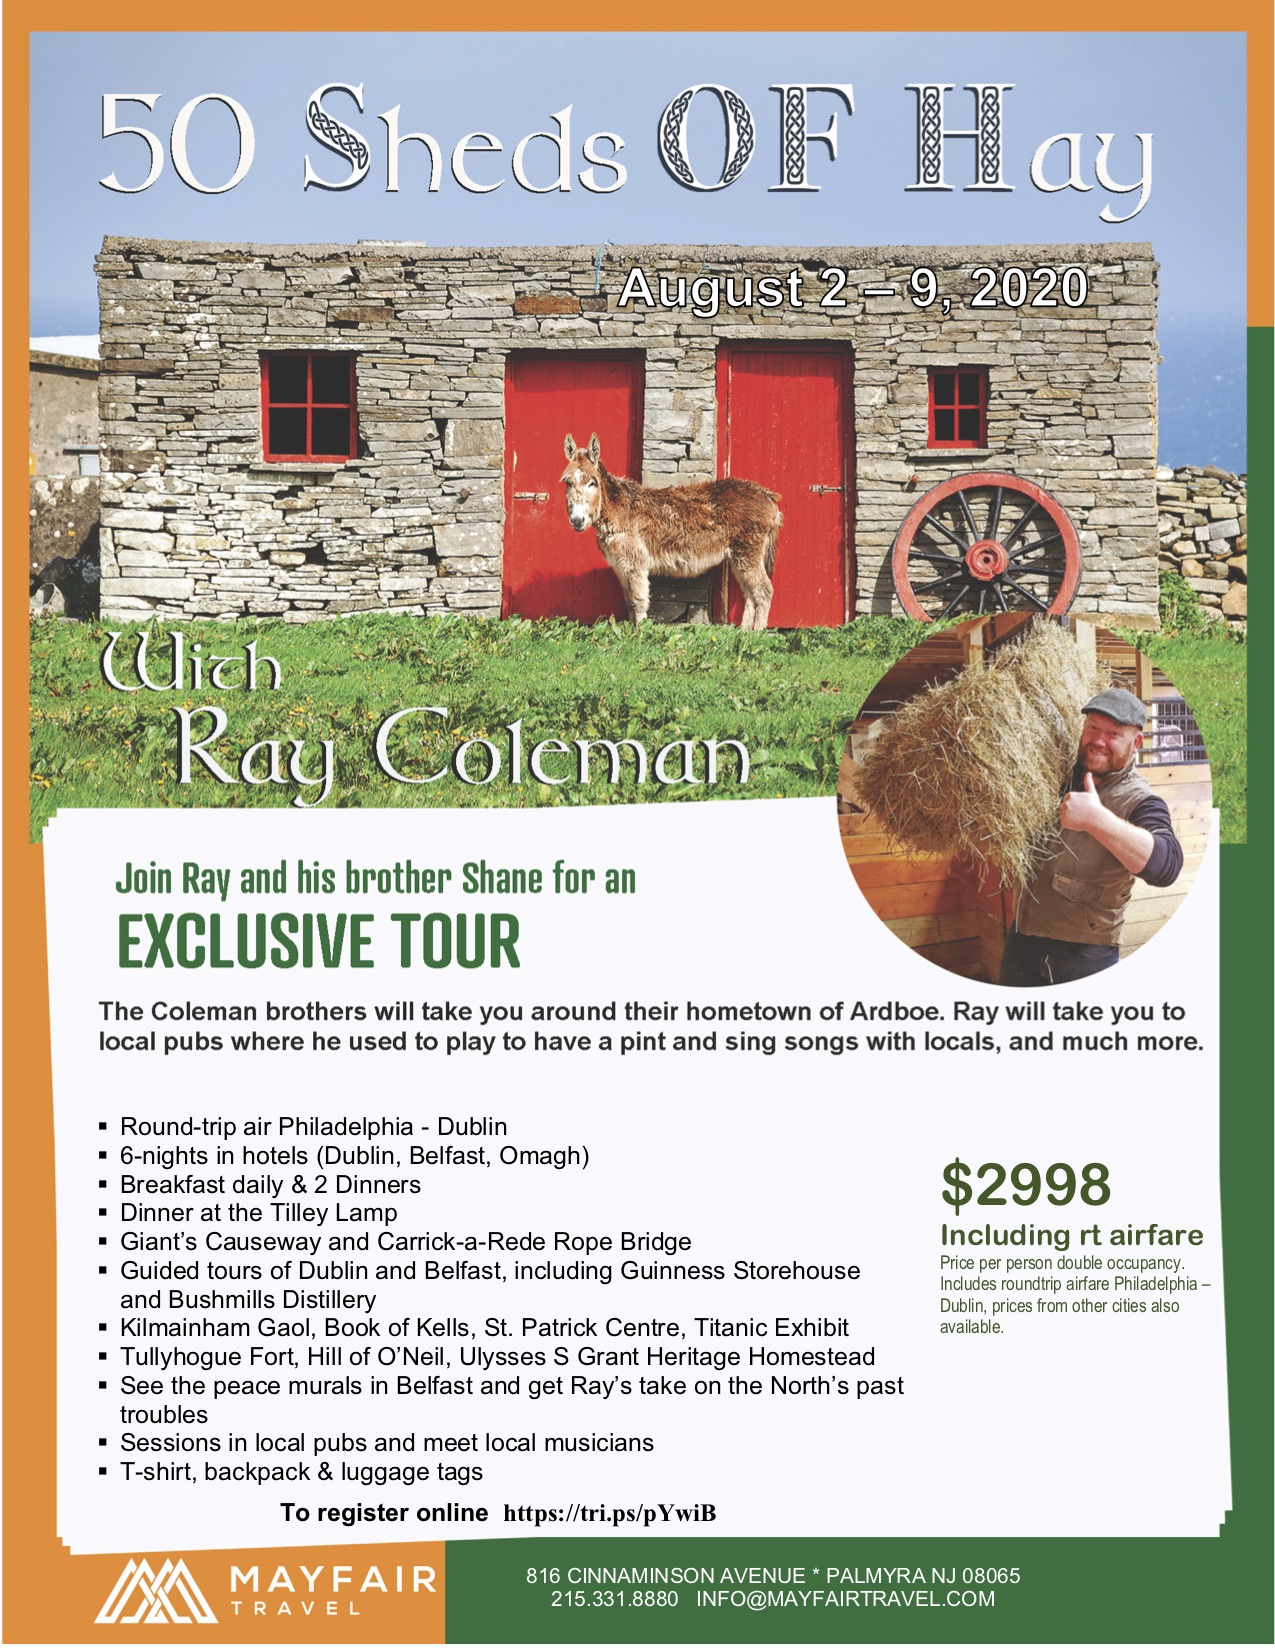 50 Sheds of Hay Tour of Ireland